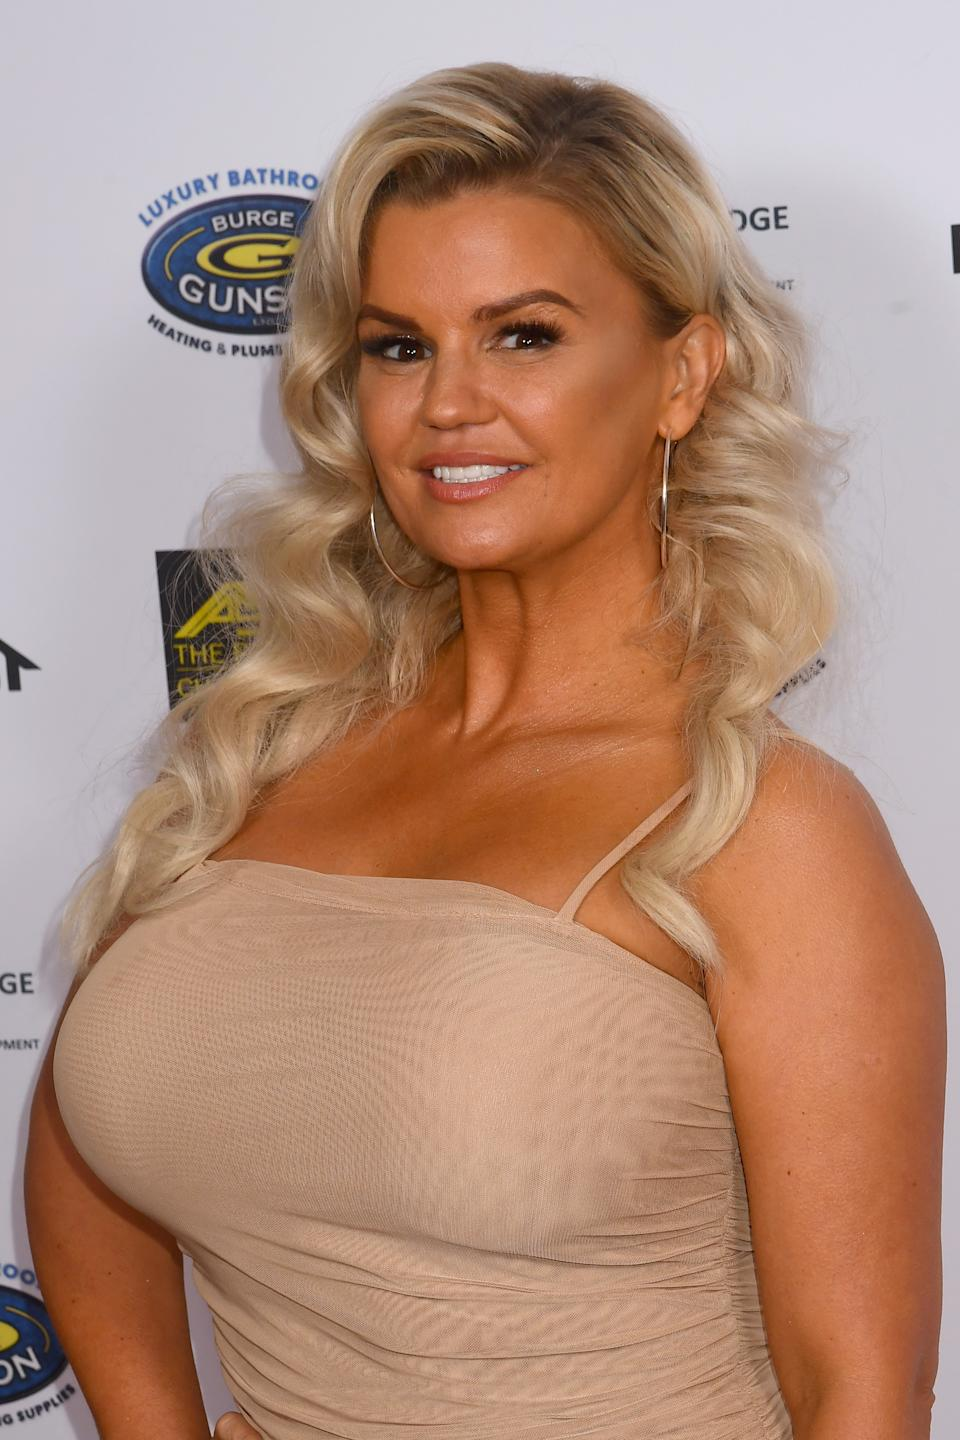 Kerry Katona has recently moved home with her family. (Photo by Dave J Hogan/Getty Images)